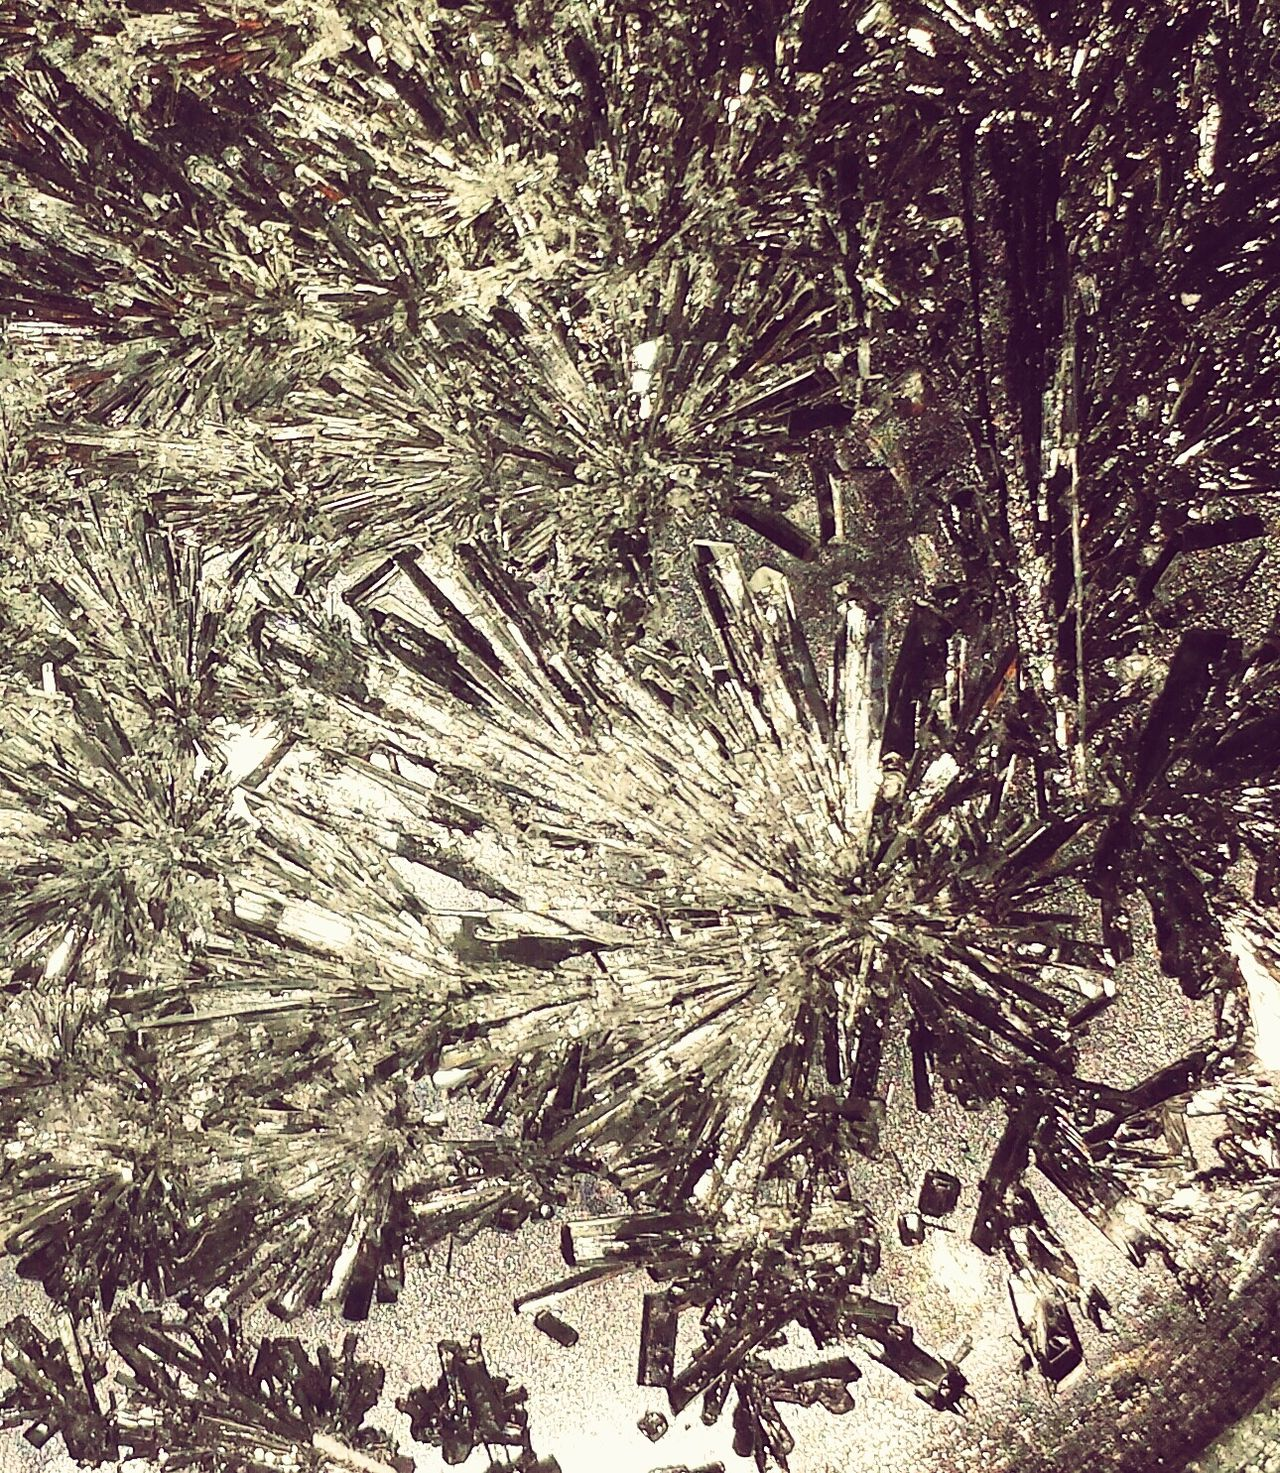 Crystals Forming Crystals Experimental Photography Experimental Messing Around Sparkle Glittery Taking Photos Peace And Quiet Eye4photography  Beaytifulinnature Beauty In Nature Eyem Collection No People Eyem Gallery Eyem Best Shots Eyemcaptured Bling